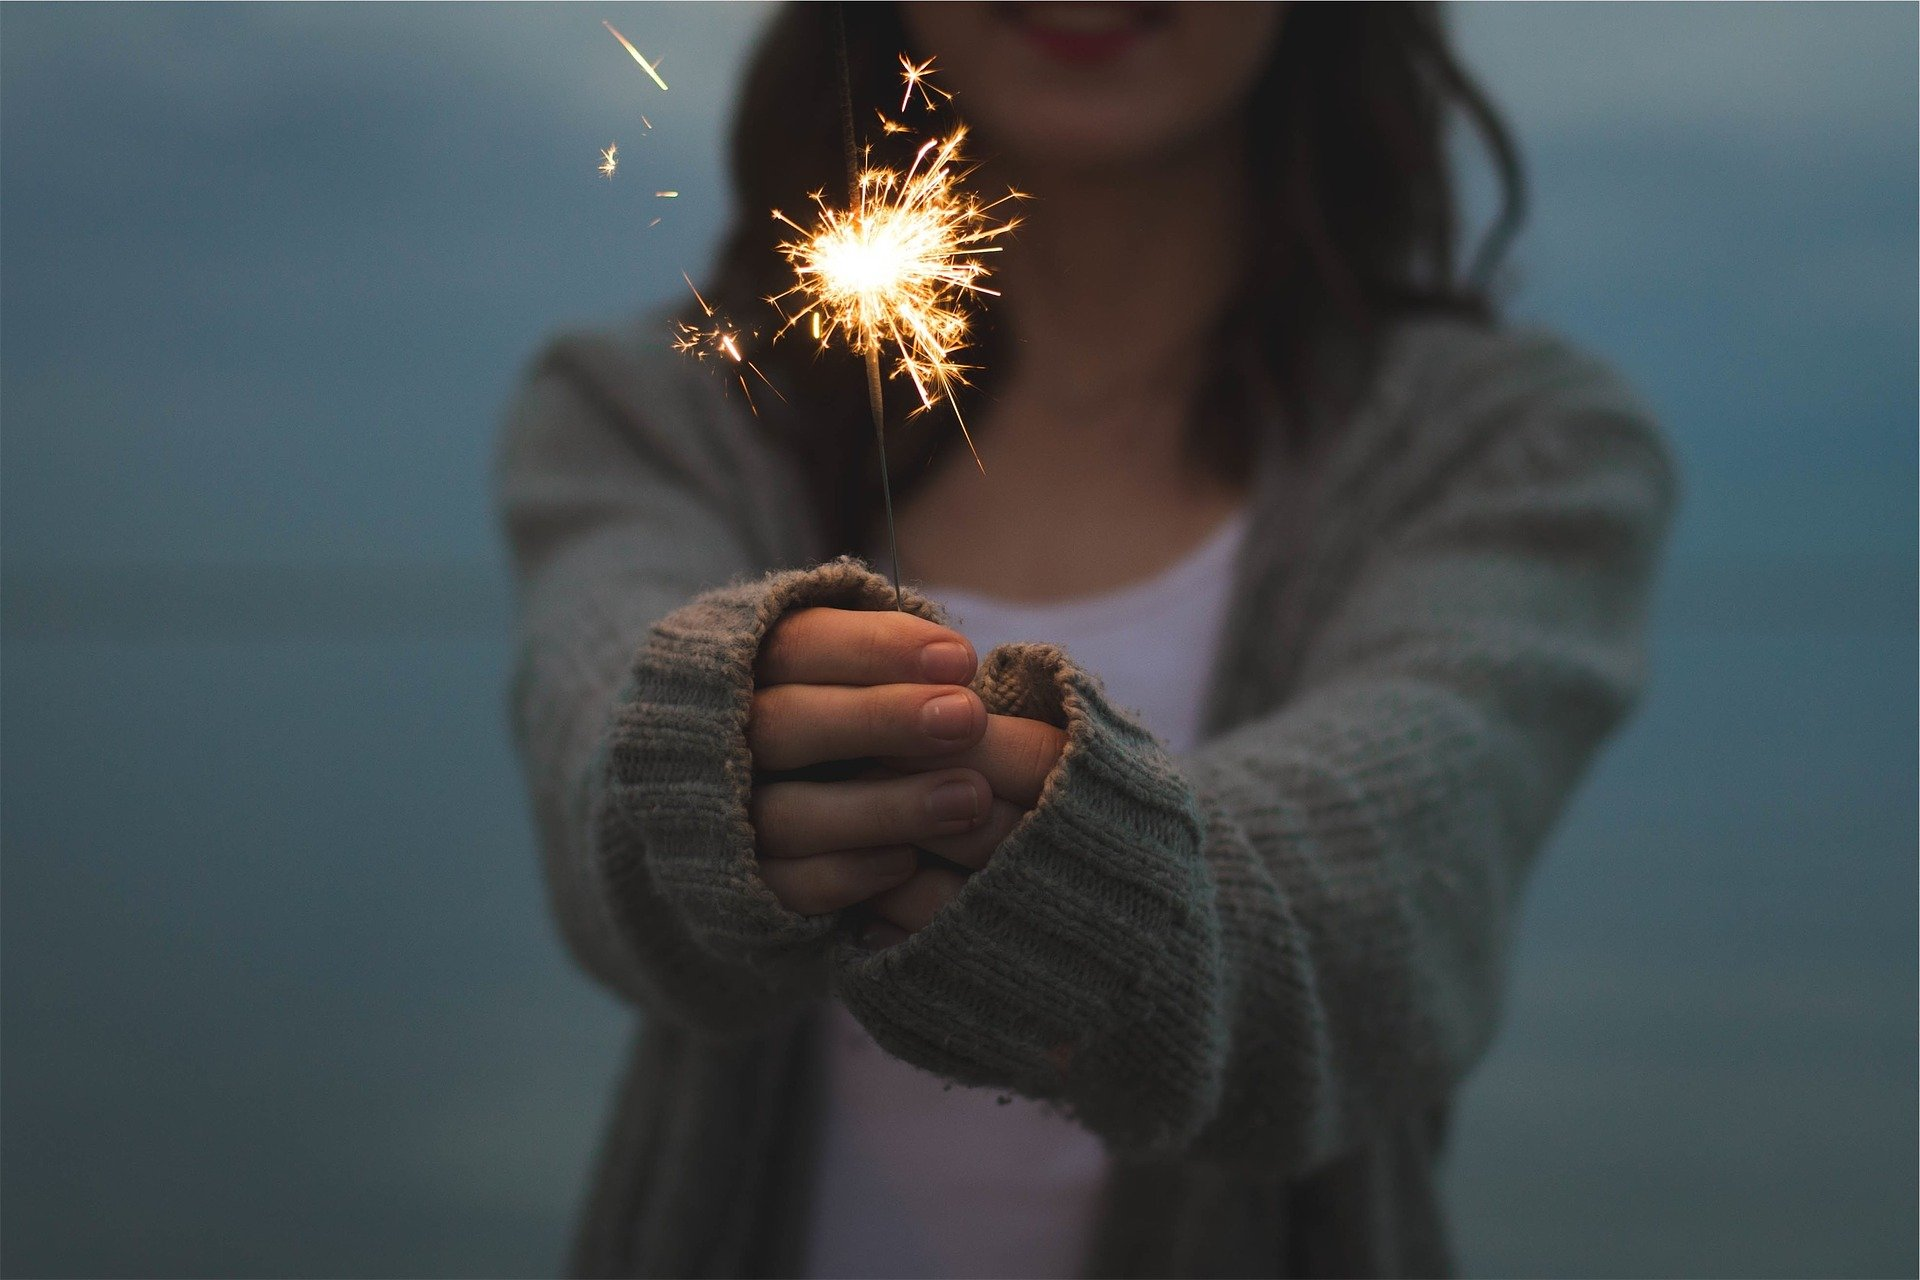 Fireworks Injuries: Who's to Blame when Someone Gets Hurt?